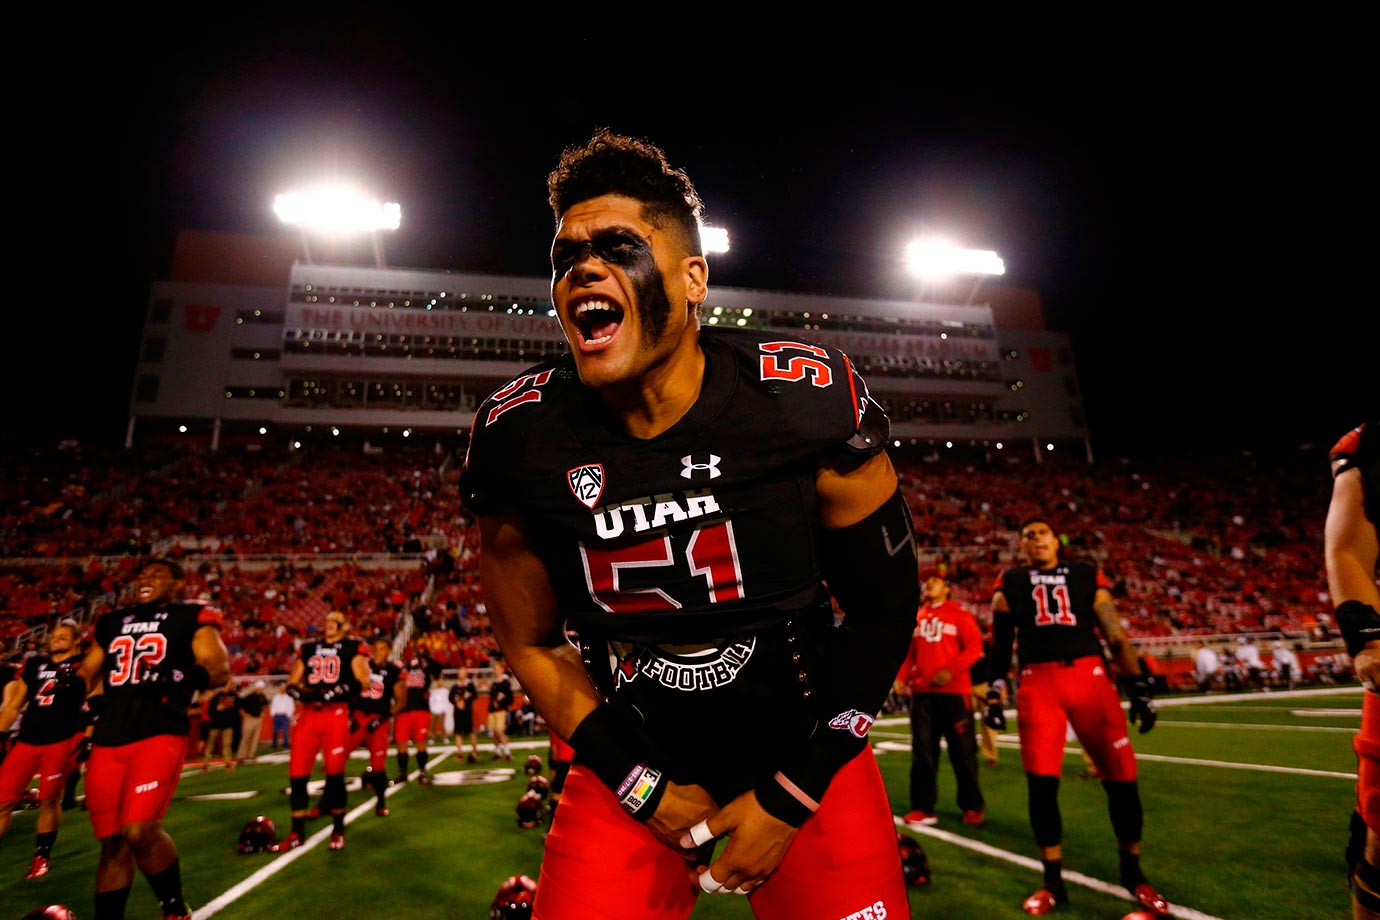 Jason Fanaika of Utah was covered with eyeblack during pregame warmup for a game against Arizona State.